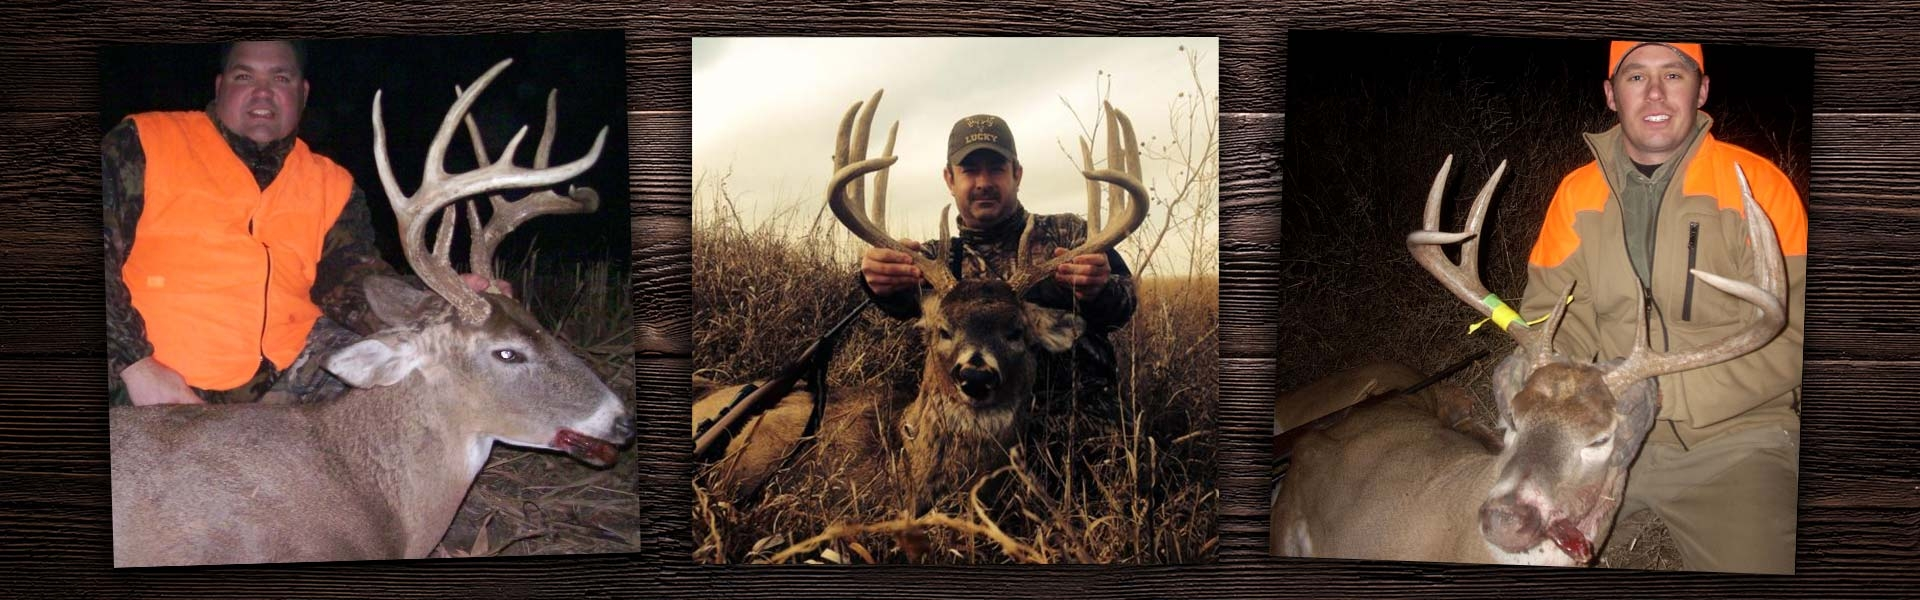 Kansas Rifle/Firearm Deer Hunting Outfitters